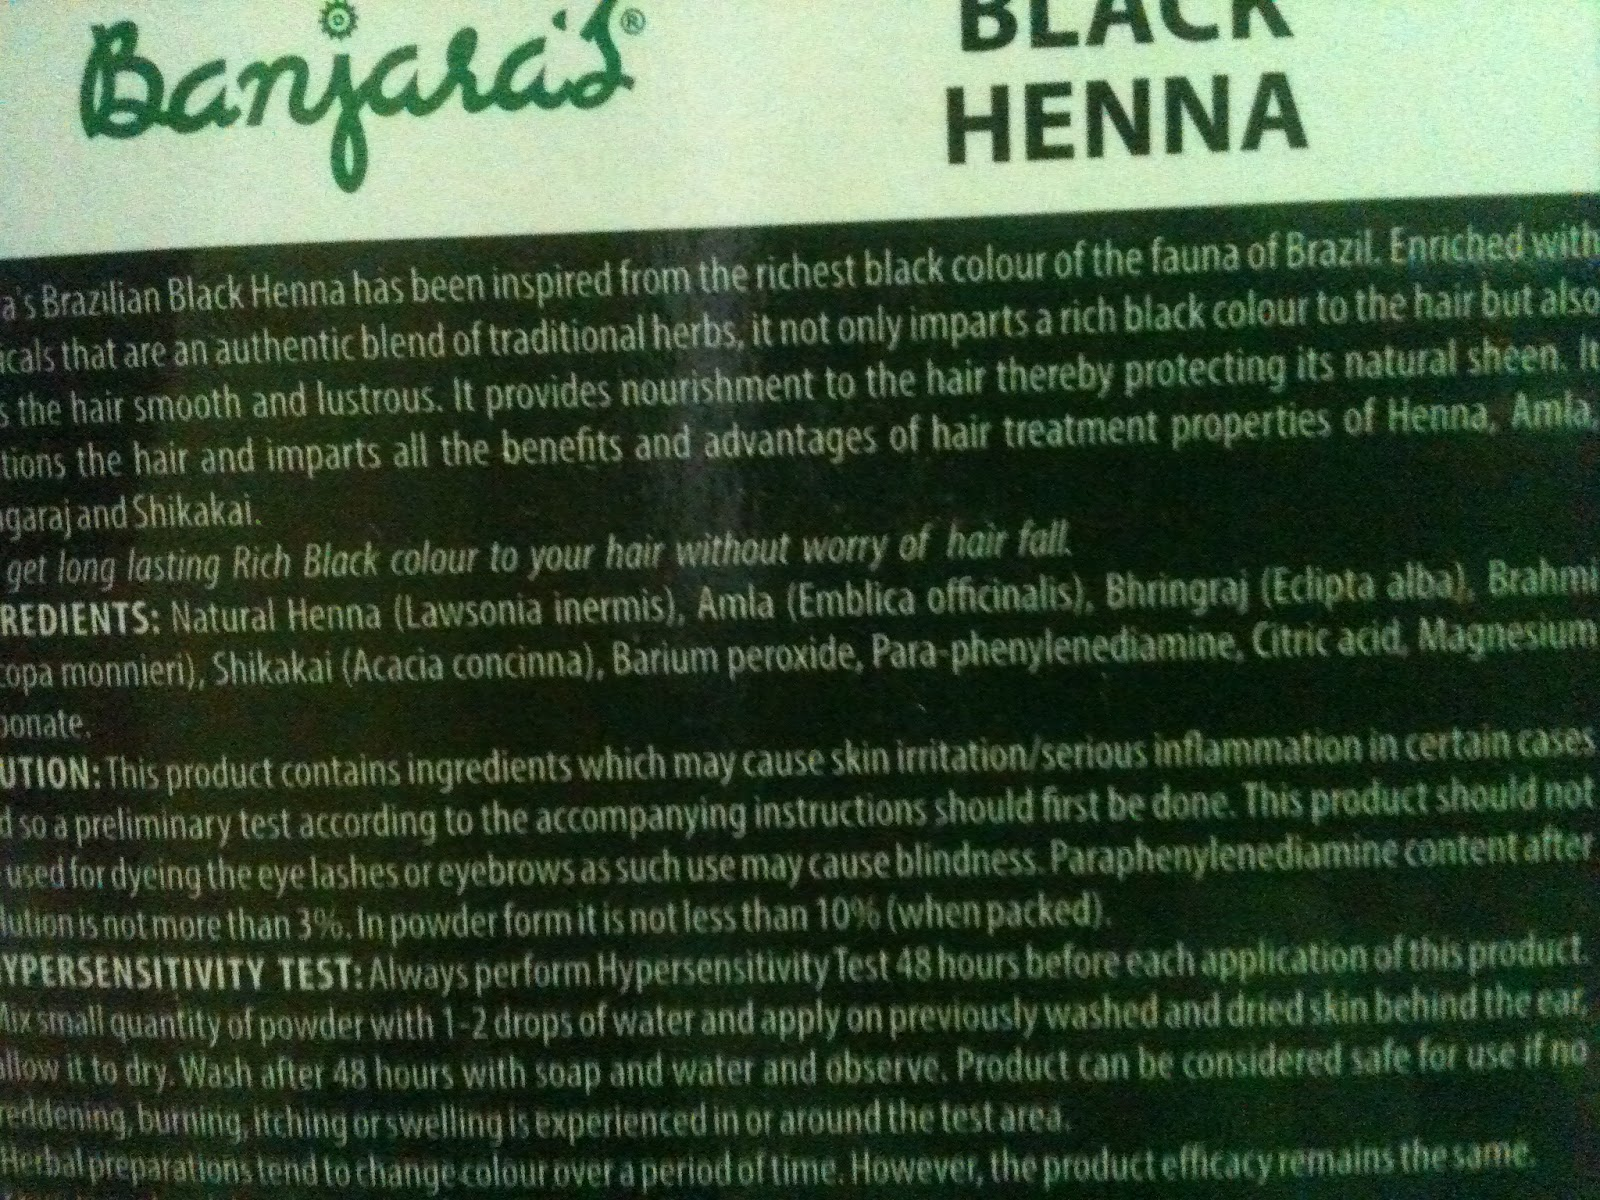 banjaras black henna review